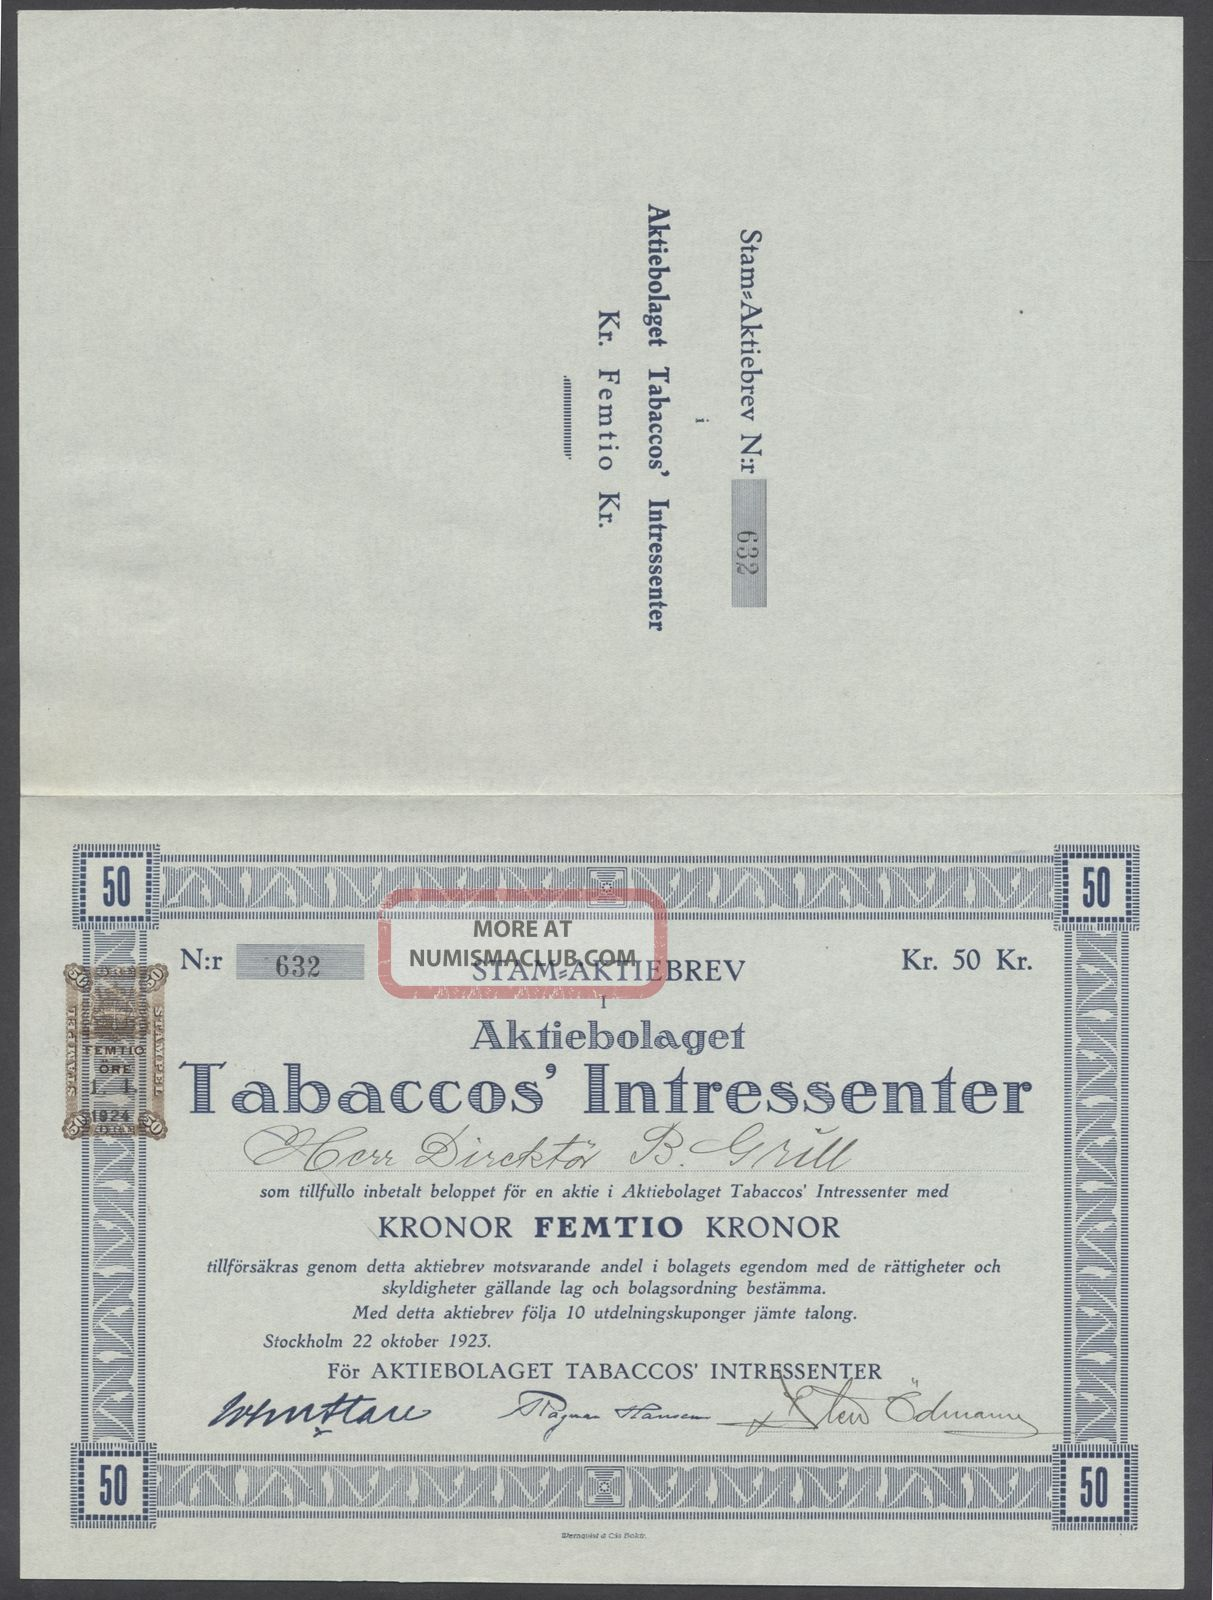 Sweden 1923 Bond Certificate Tabaccos ' Intressenter Stockholm. .  B1566 World photo